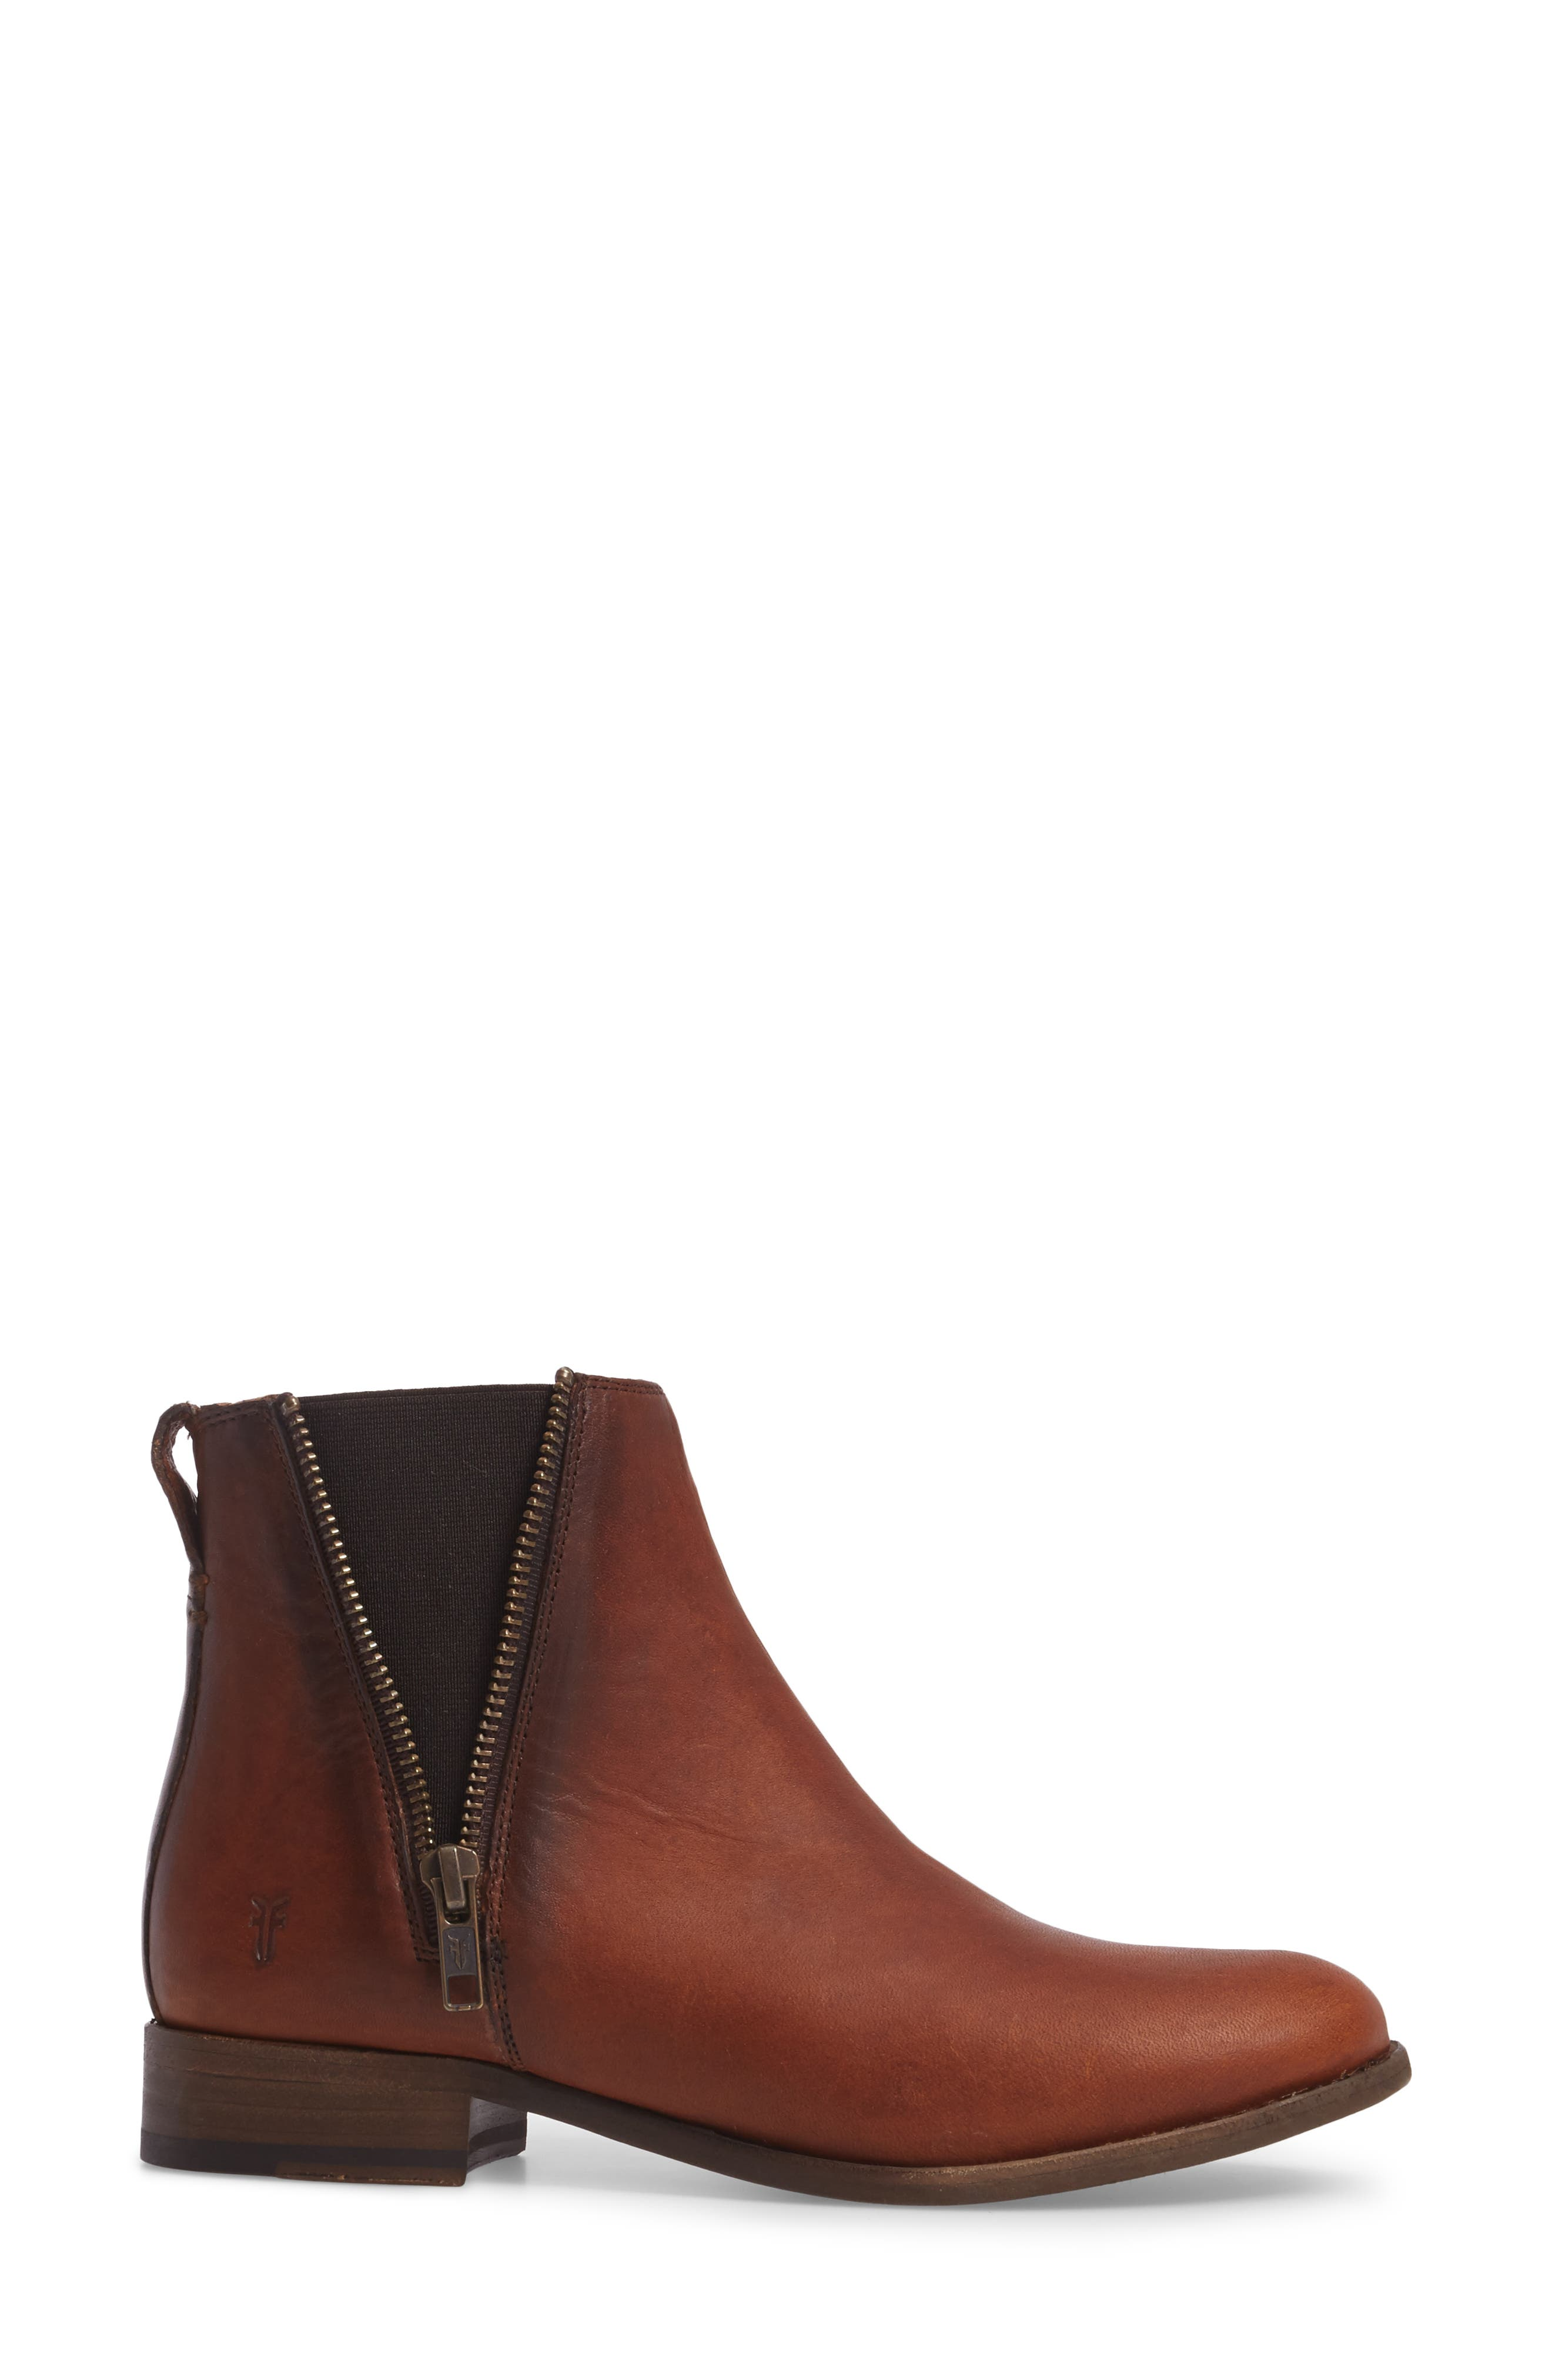 Carly Chelsea Boot,                             Alternate thumbnail 3, color,                             Cognac Leather